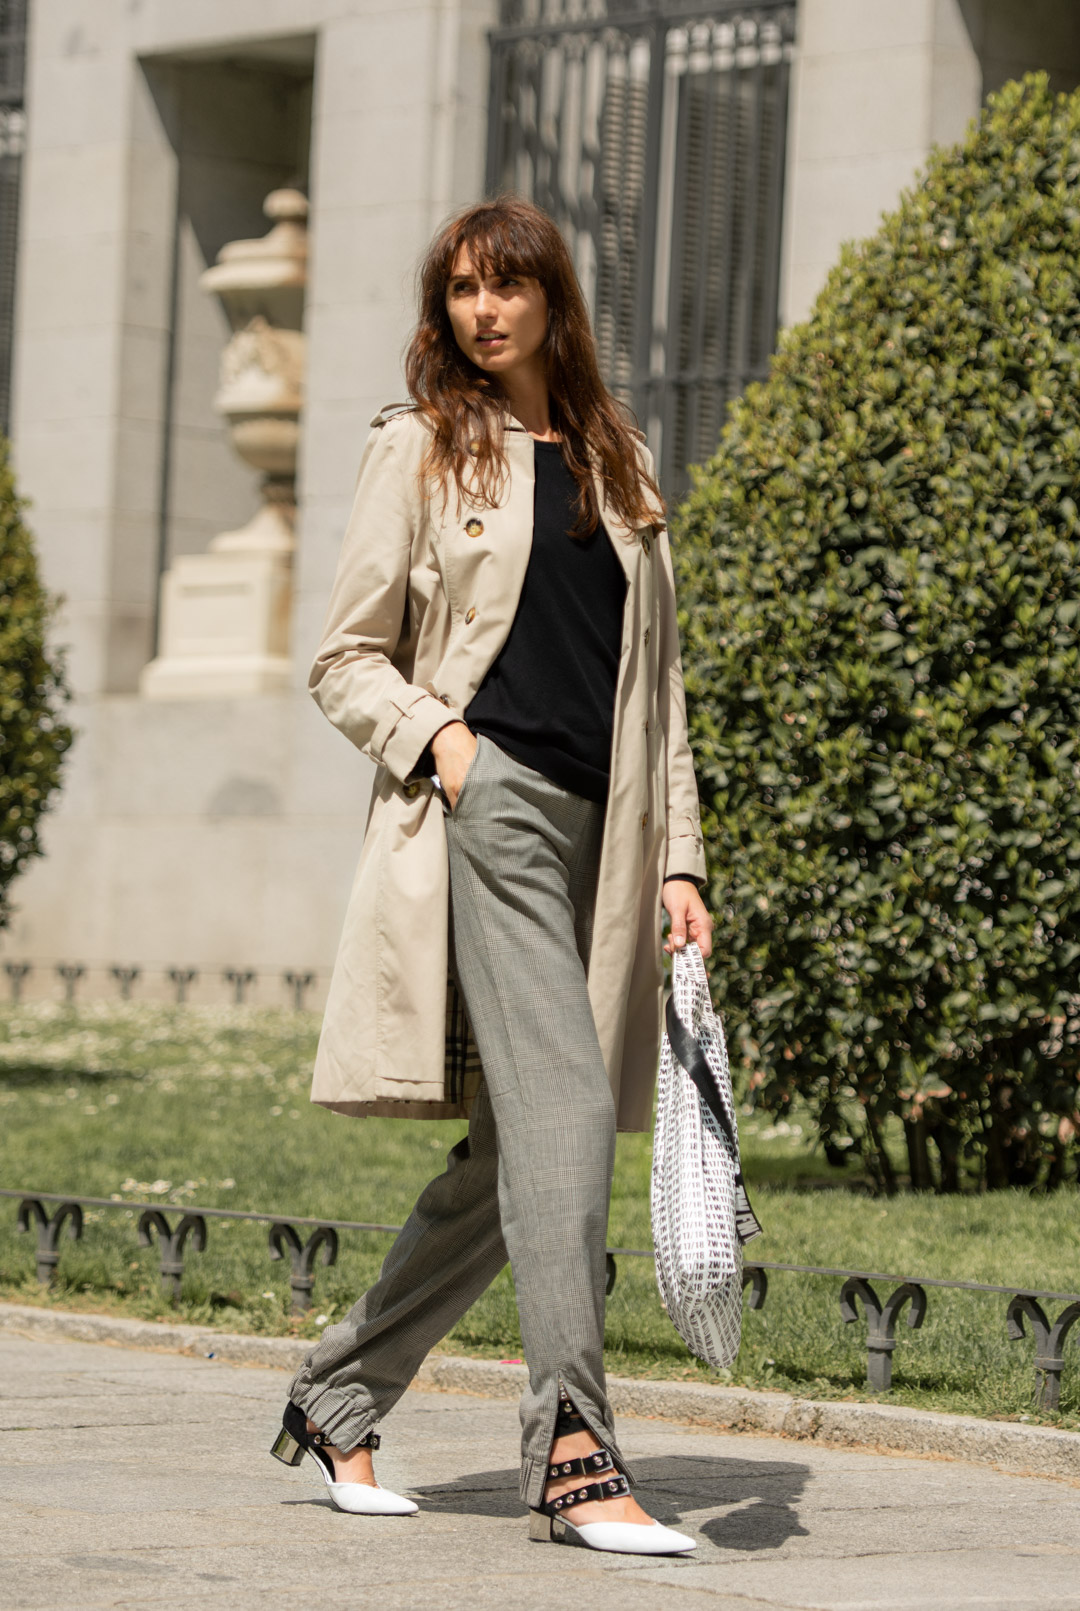 mayte-street-style-burberry-web-03